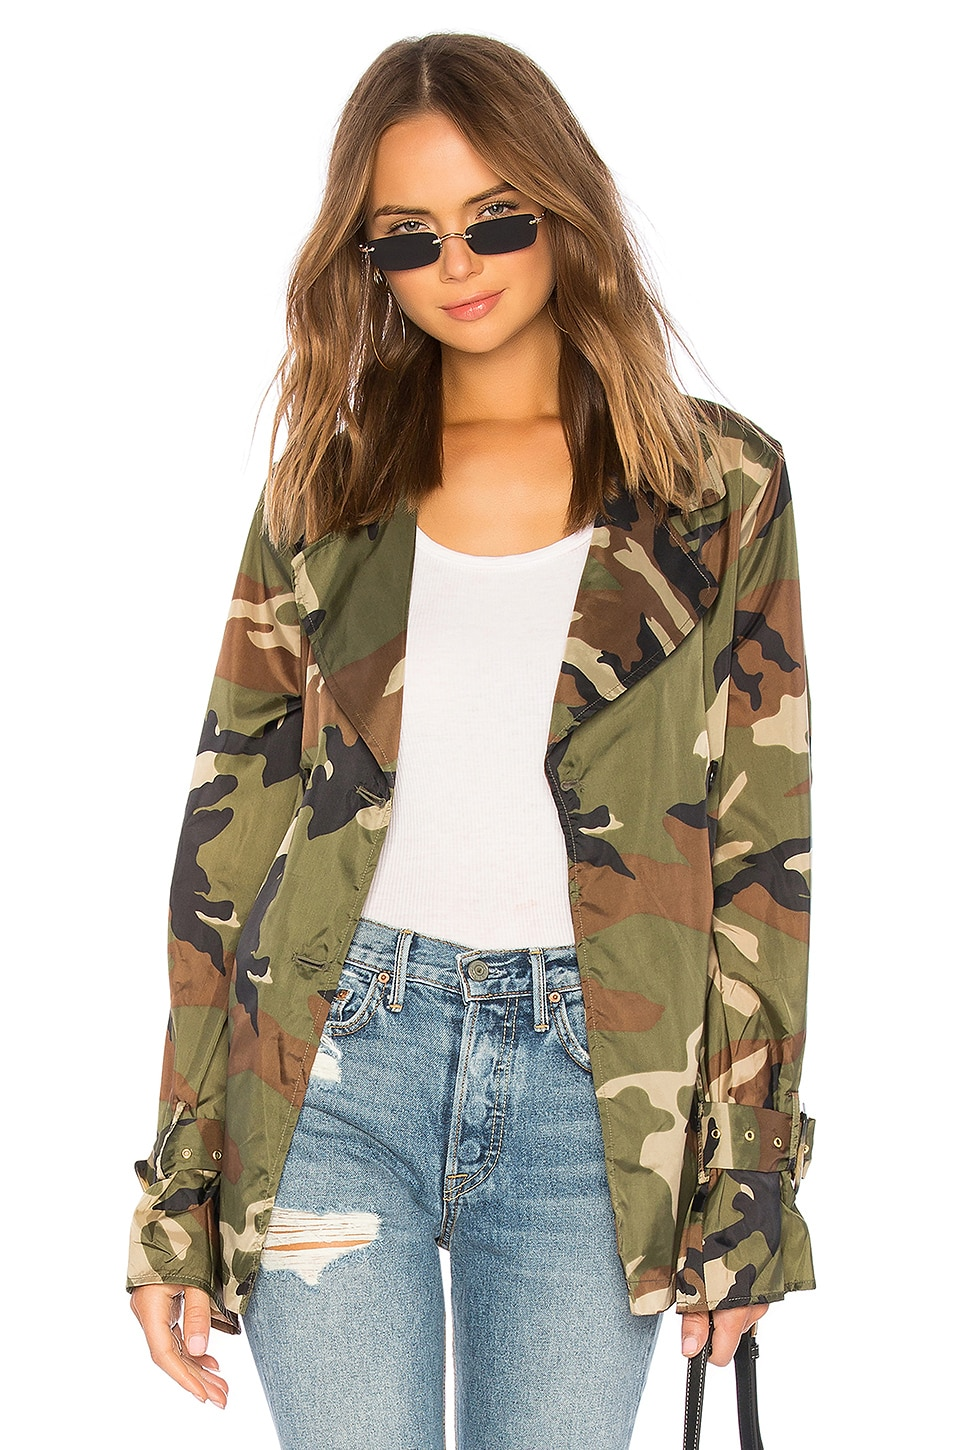 LPA Trench Coat in Camo